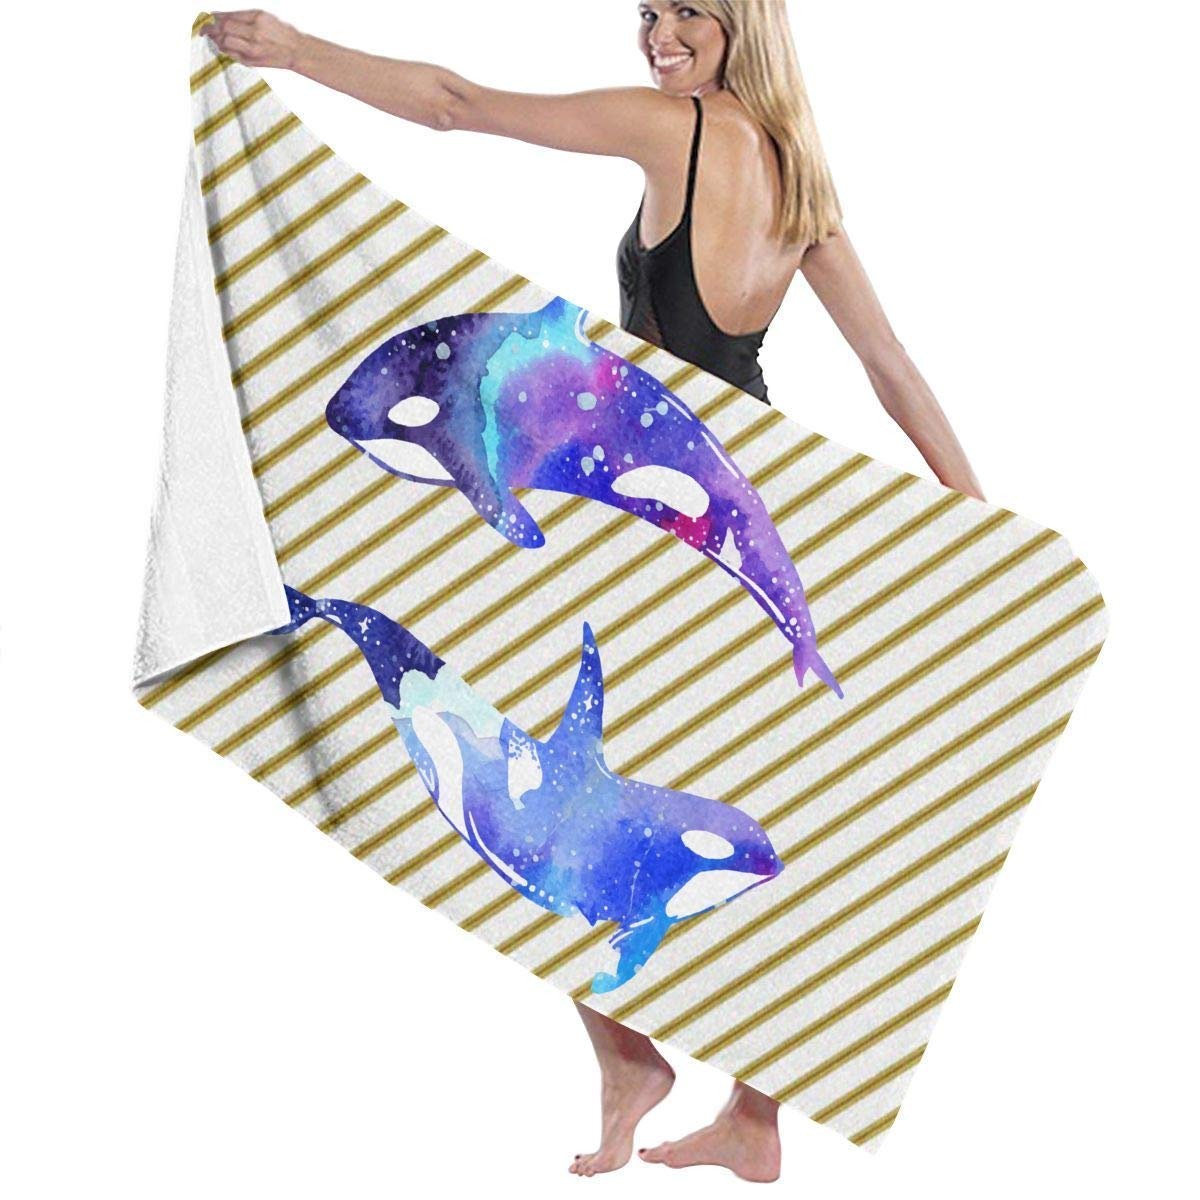 Xcvgcxcvasda Beach Bath Towel Orca Killer Whale Prints Bath Towel Wrap Spa Shower And Wrap Towels Swimming Bathrobe Cover Up For Ladies Girls White Buy Online In Dominica At Dominica Desertcart Com Productid